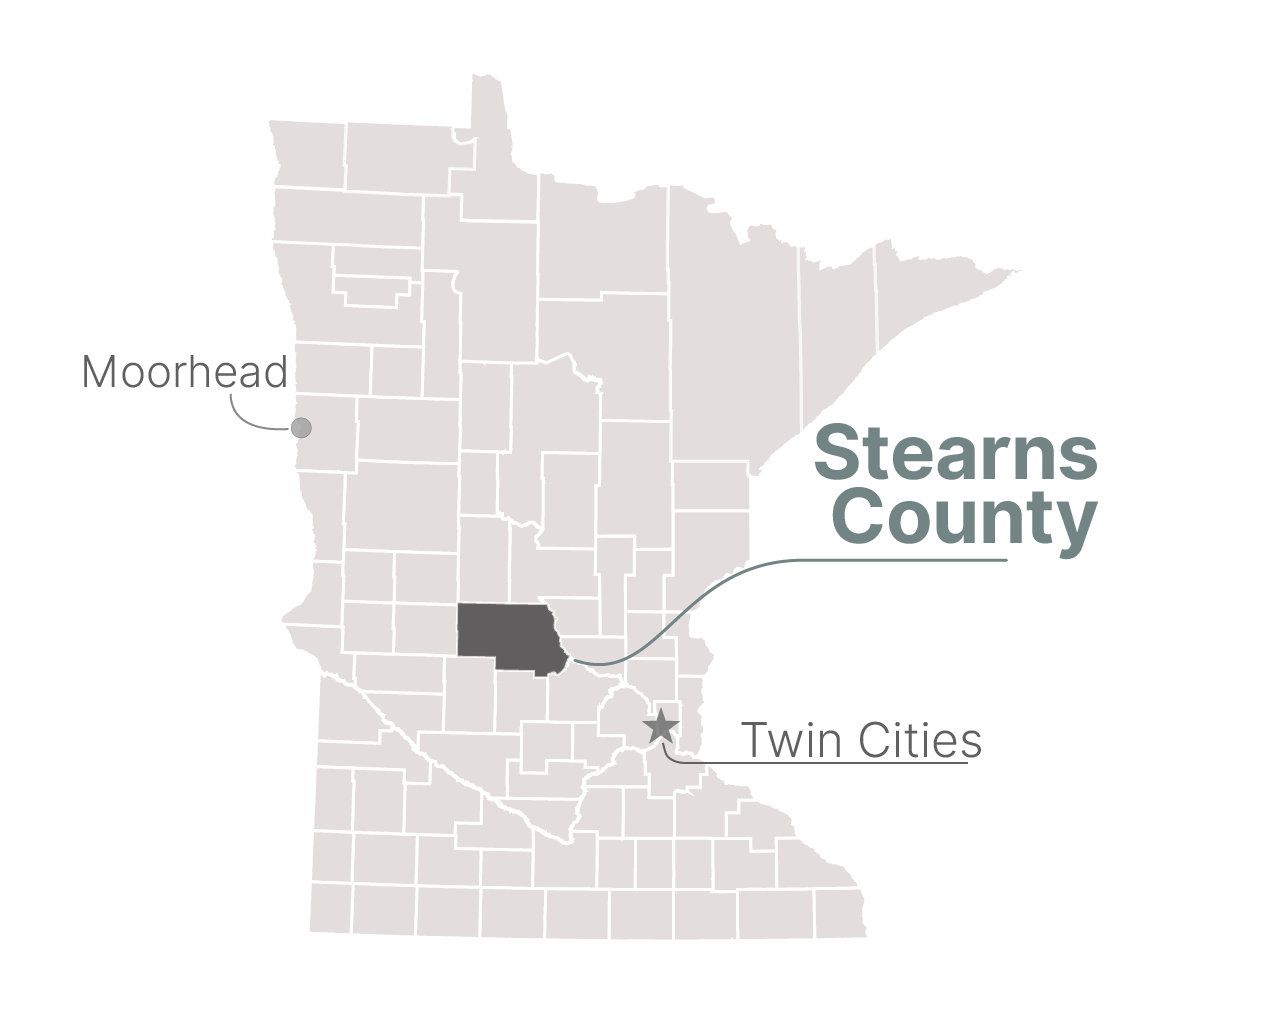 Stearns County, in central Minnesota